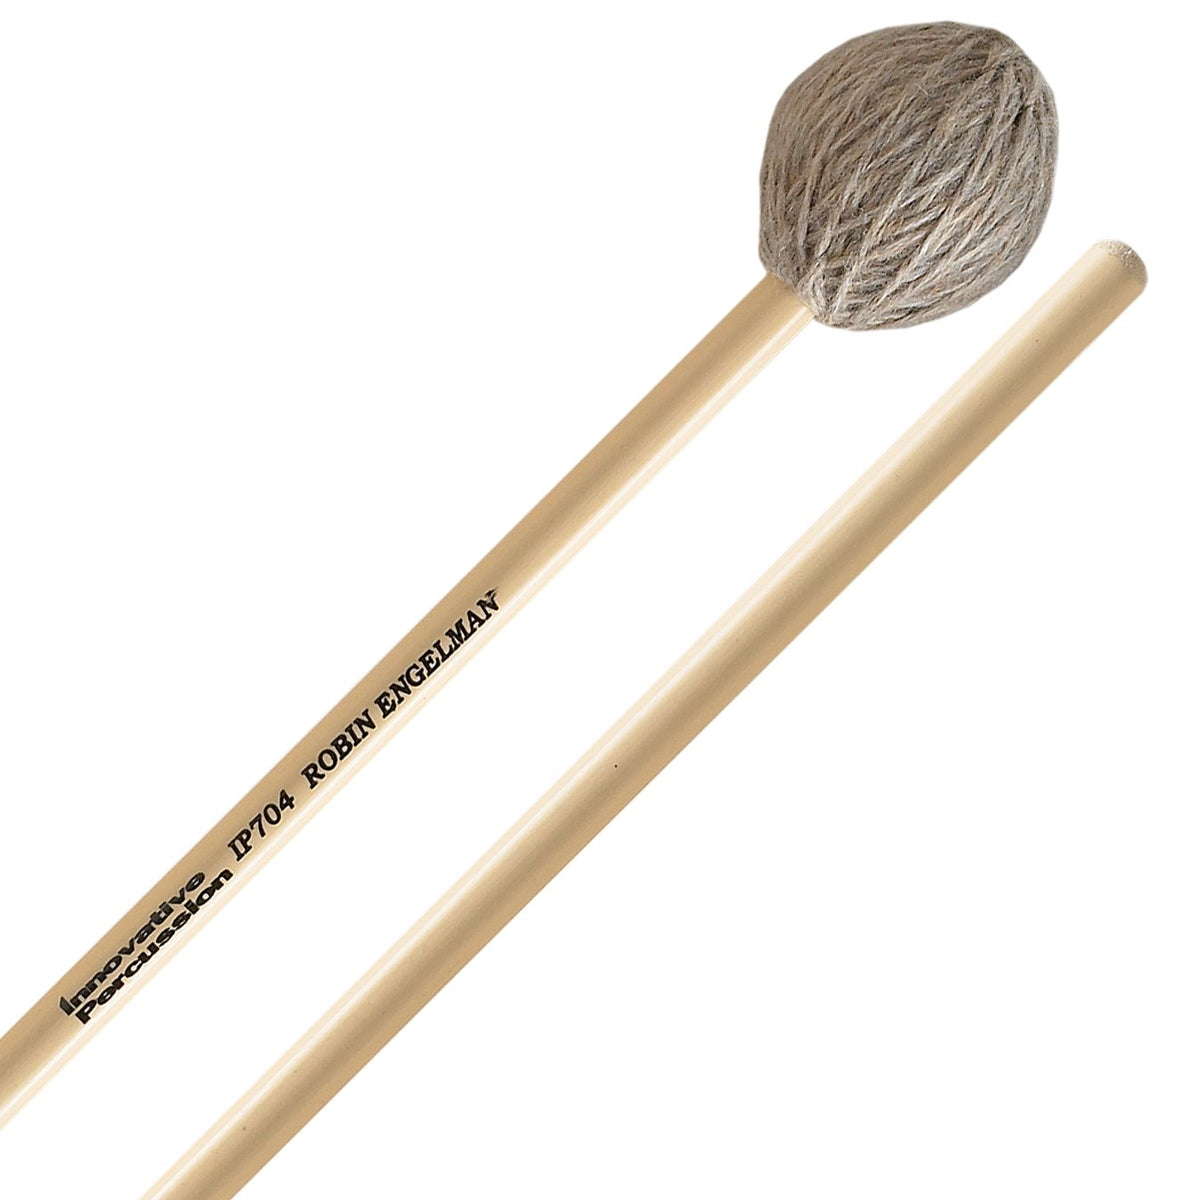 Innovative Percussion - Robin Engelman Series Concert Mallets-Percussion-Innovative Percussion-IP704: Hard/Soprano Voice-Music Elements